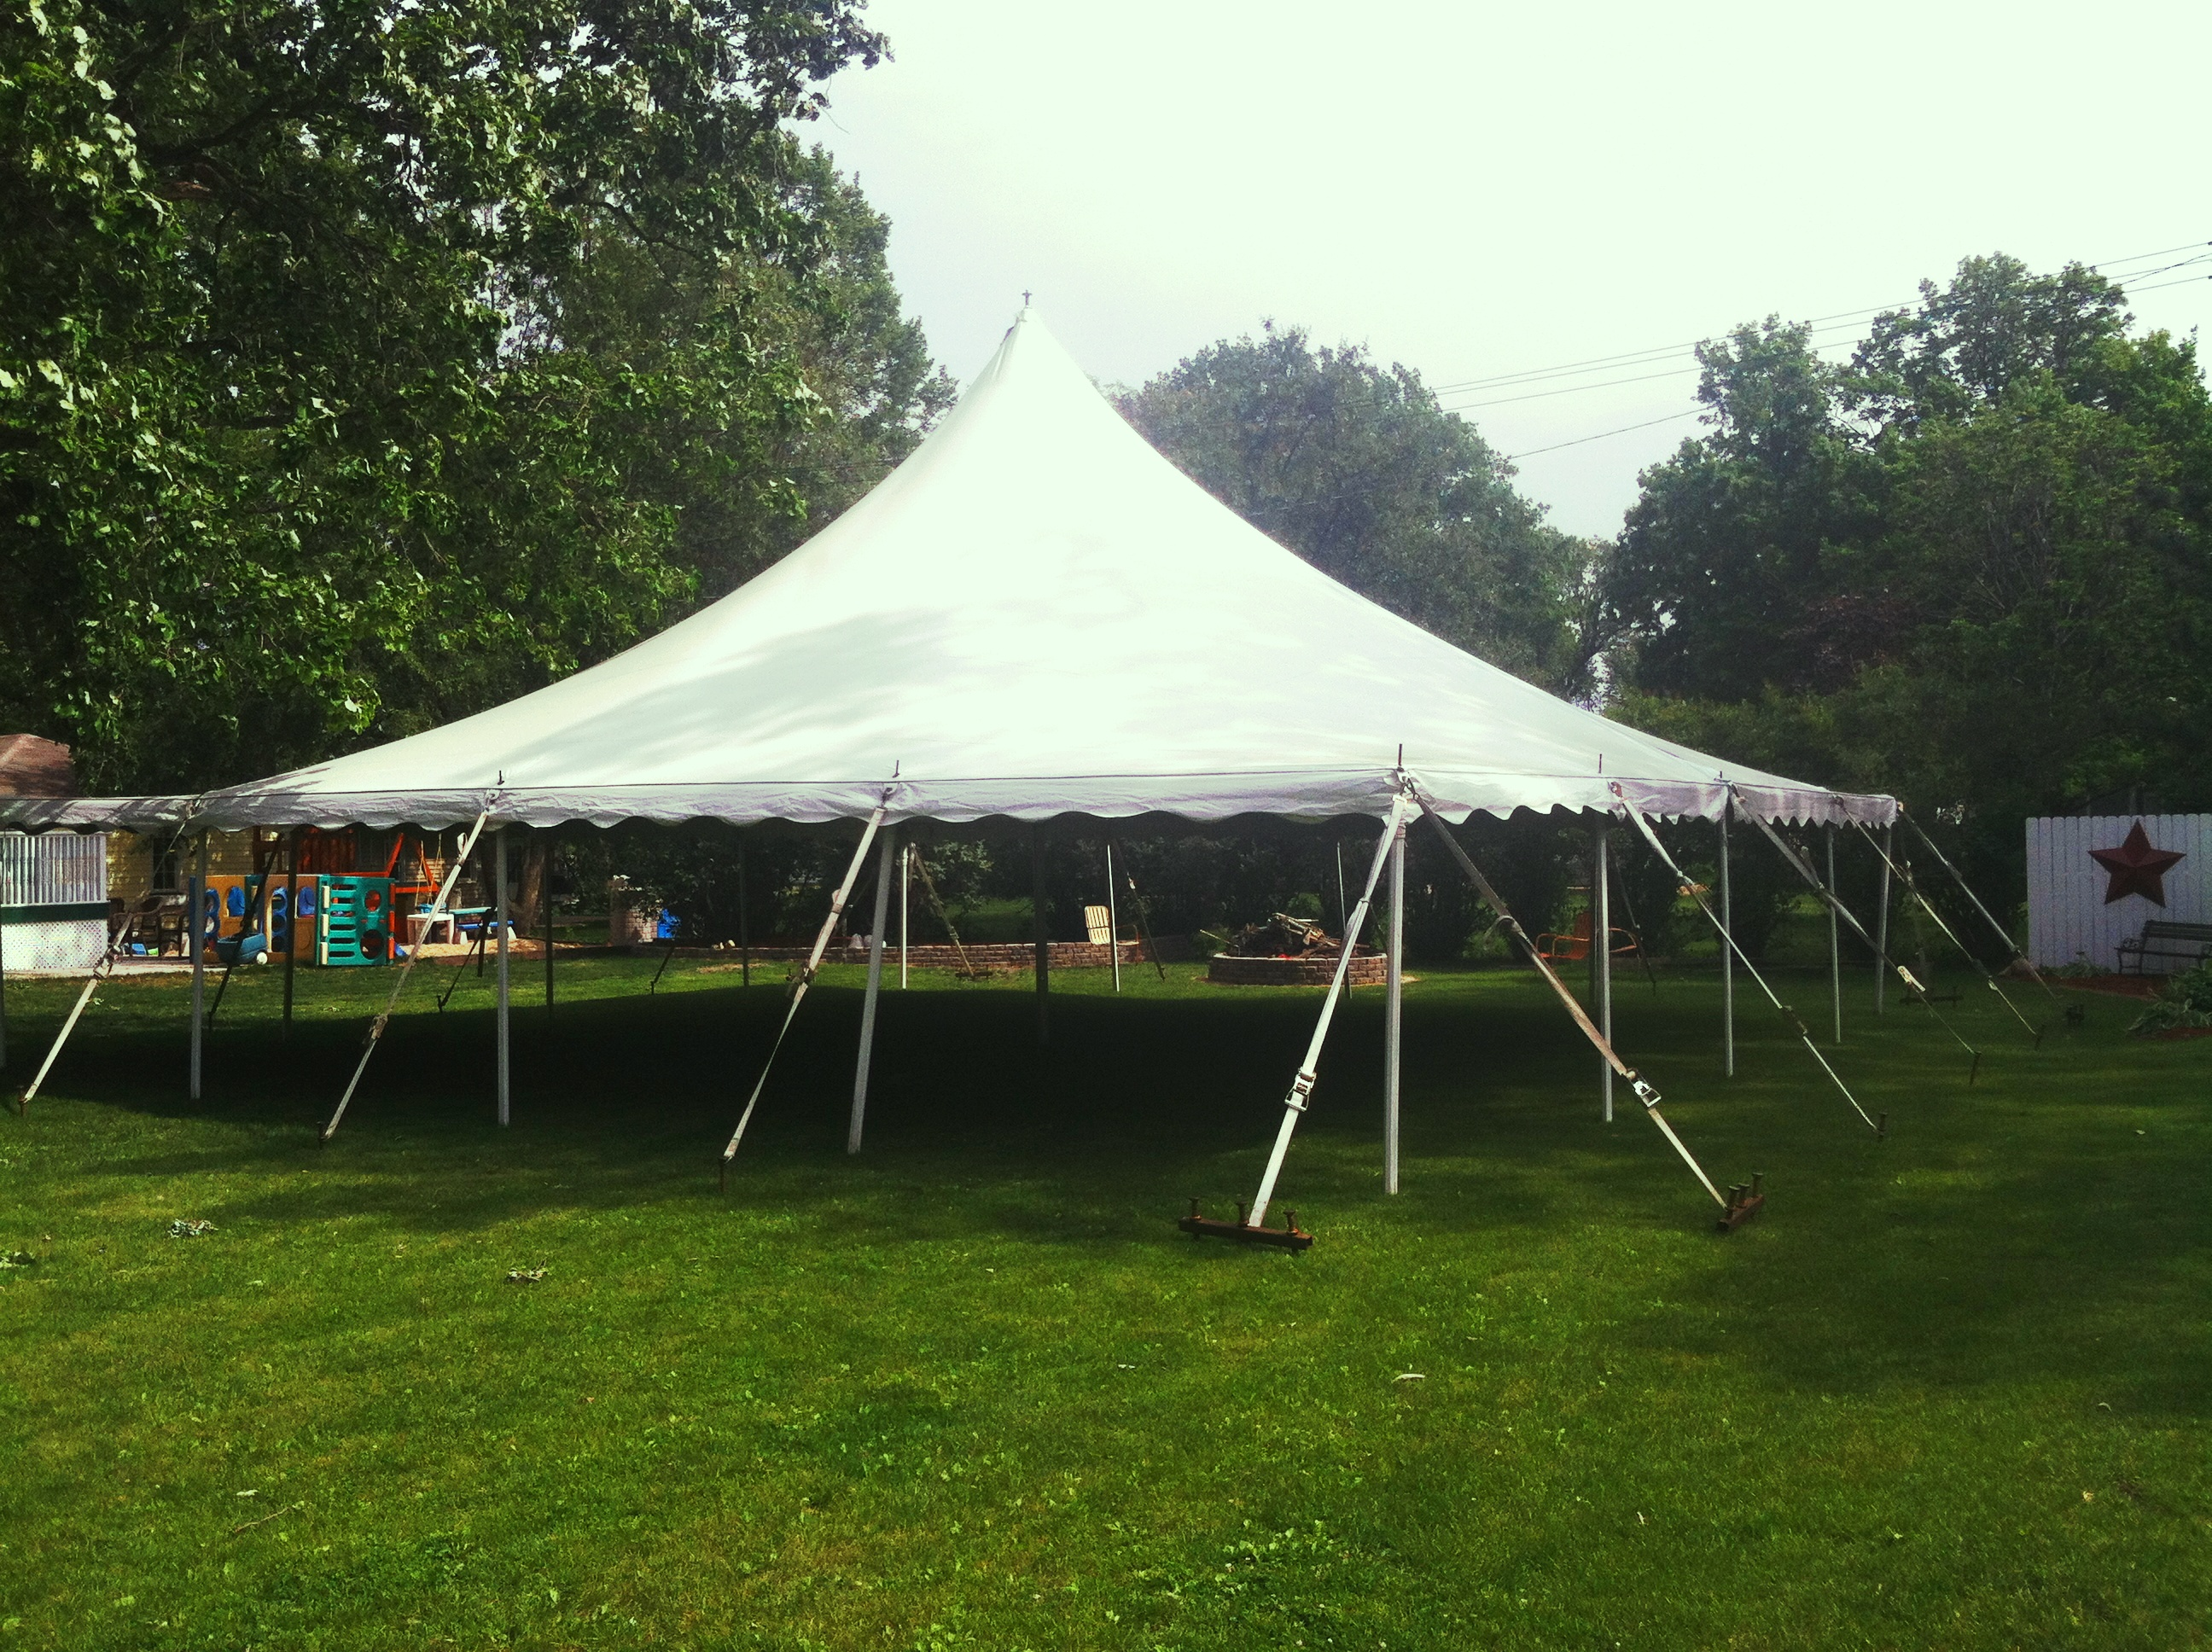 40 x 40 pole tent & 40 x 40 pole tent - THIS IS MEDIA - G u0026 K Event Rentals